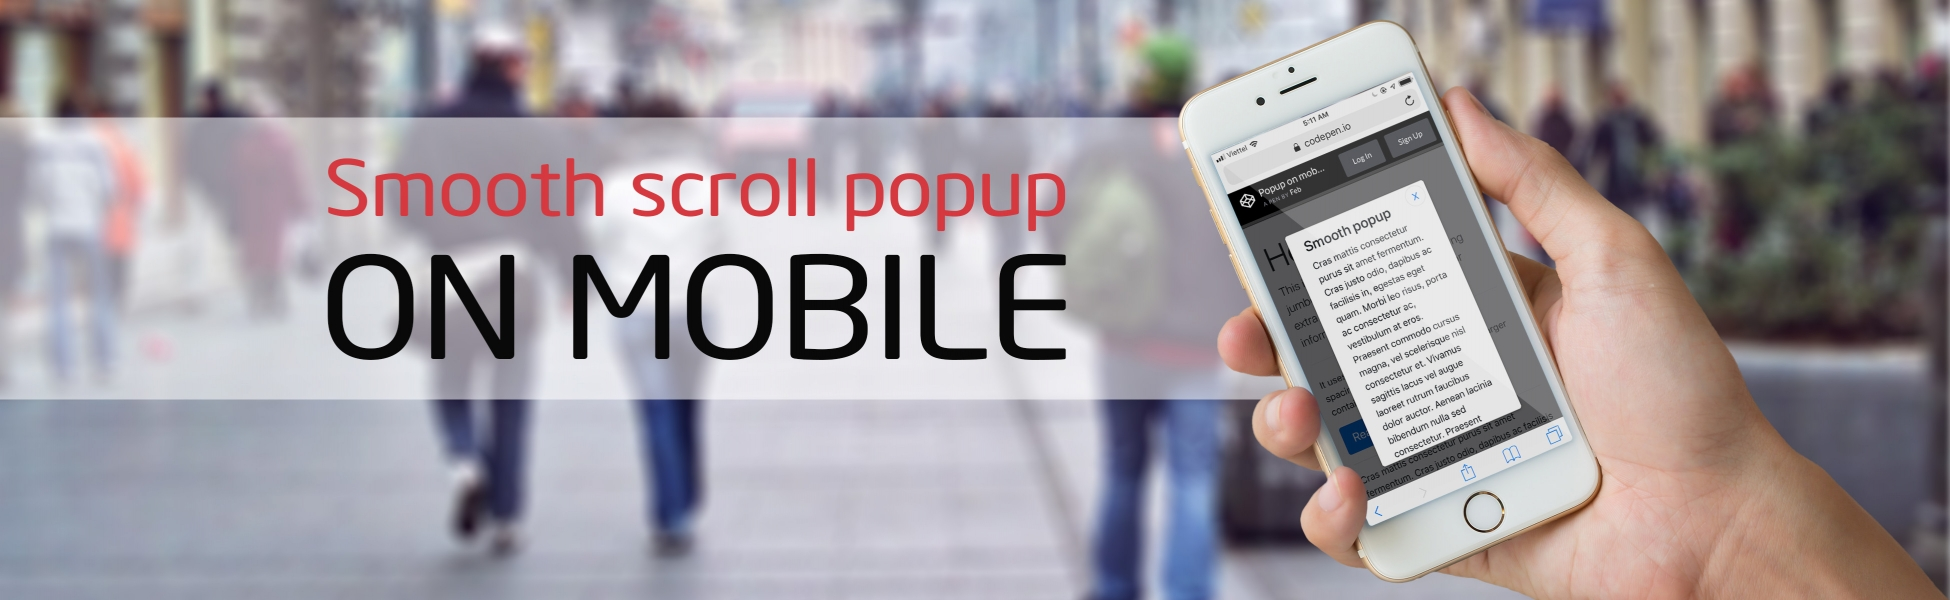 Smooth scroll popup on mobile | Lil Engine